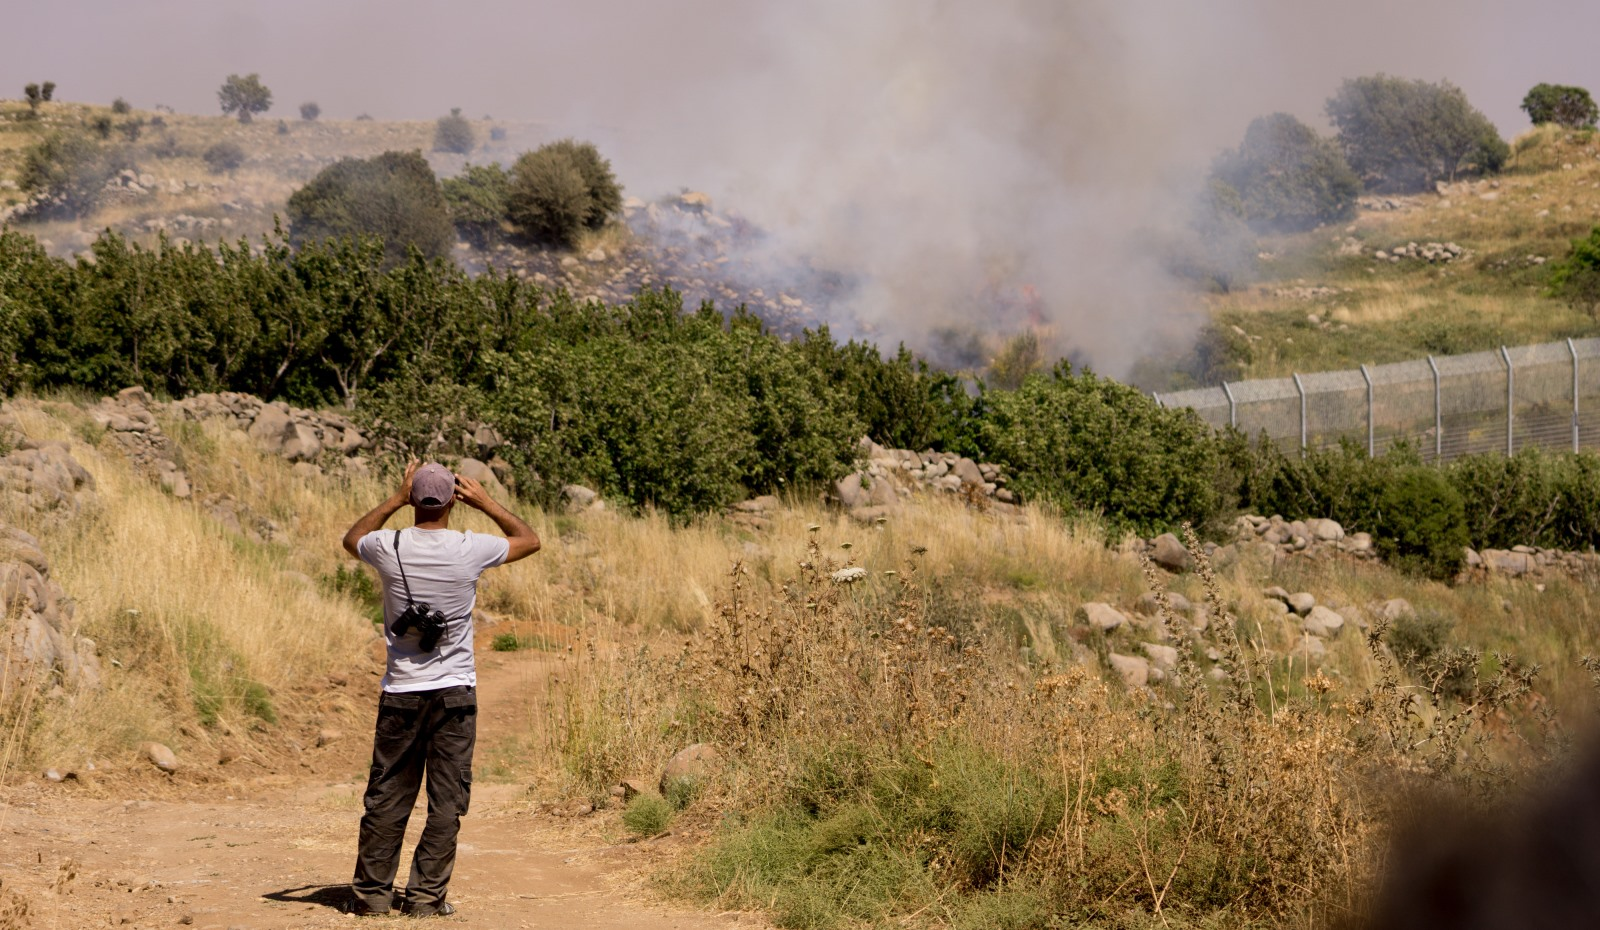 A resident of the Golan Heights in Israel watching the Syrian fighting over the border. Photo by Basel Awidat/FLASH90